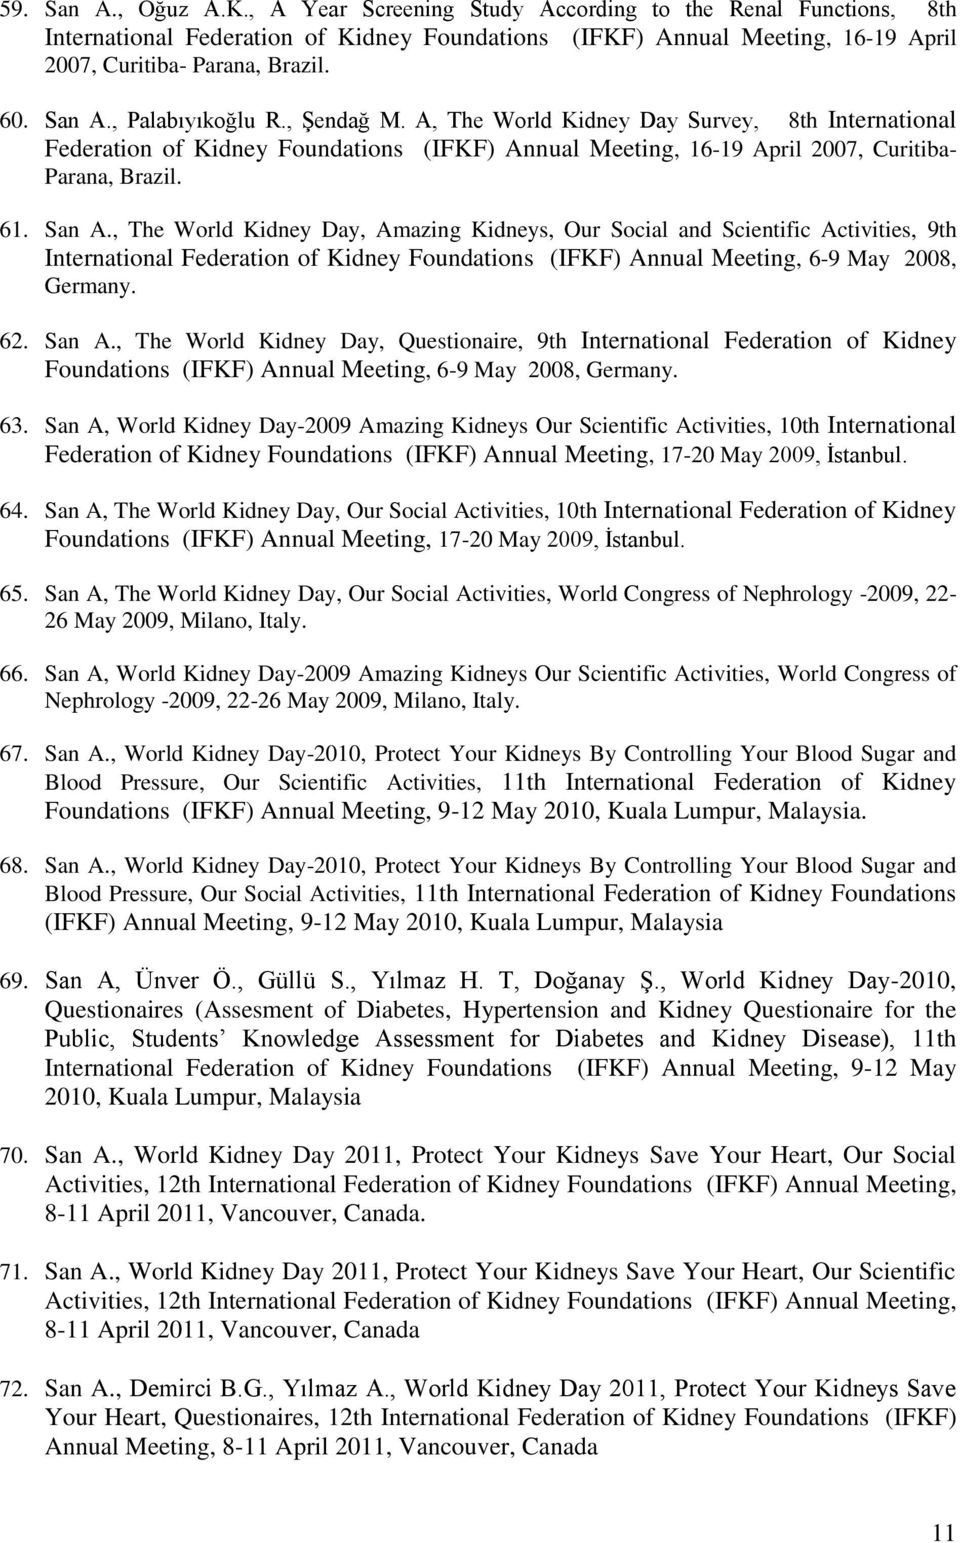 62. San A., The World Kidney Day, Questionaire, 9th International Federation of Kidney Foundations (IFKF) Annual Meeting, 6-9 May 2008, Germany. 63.